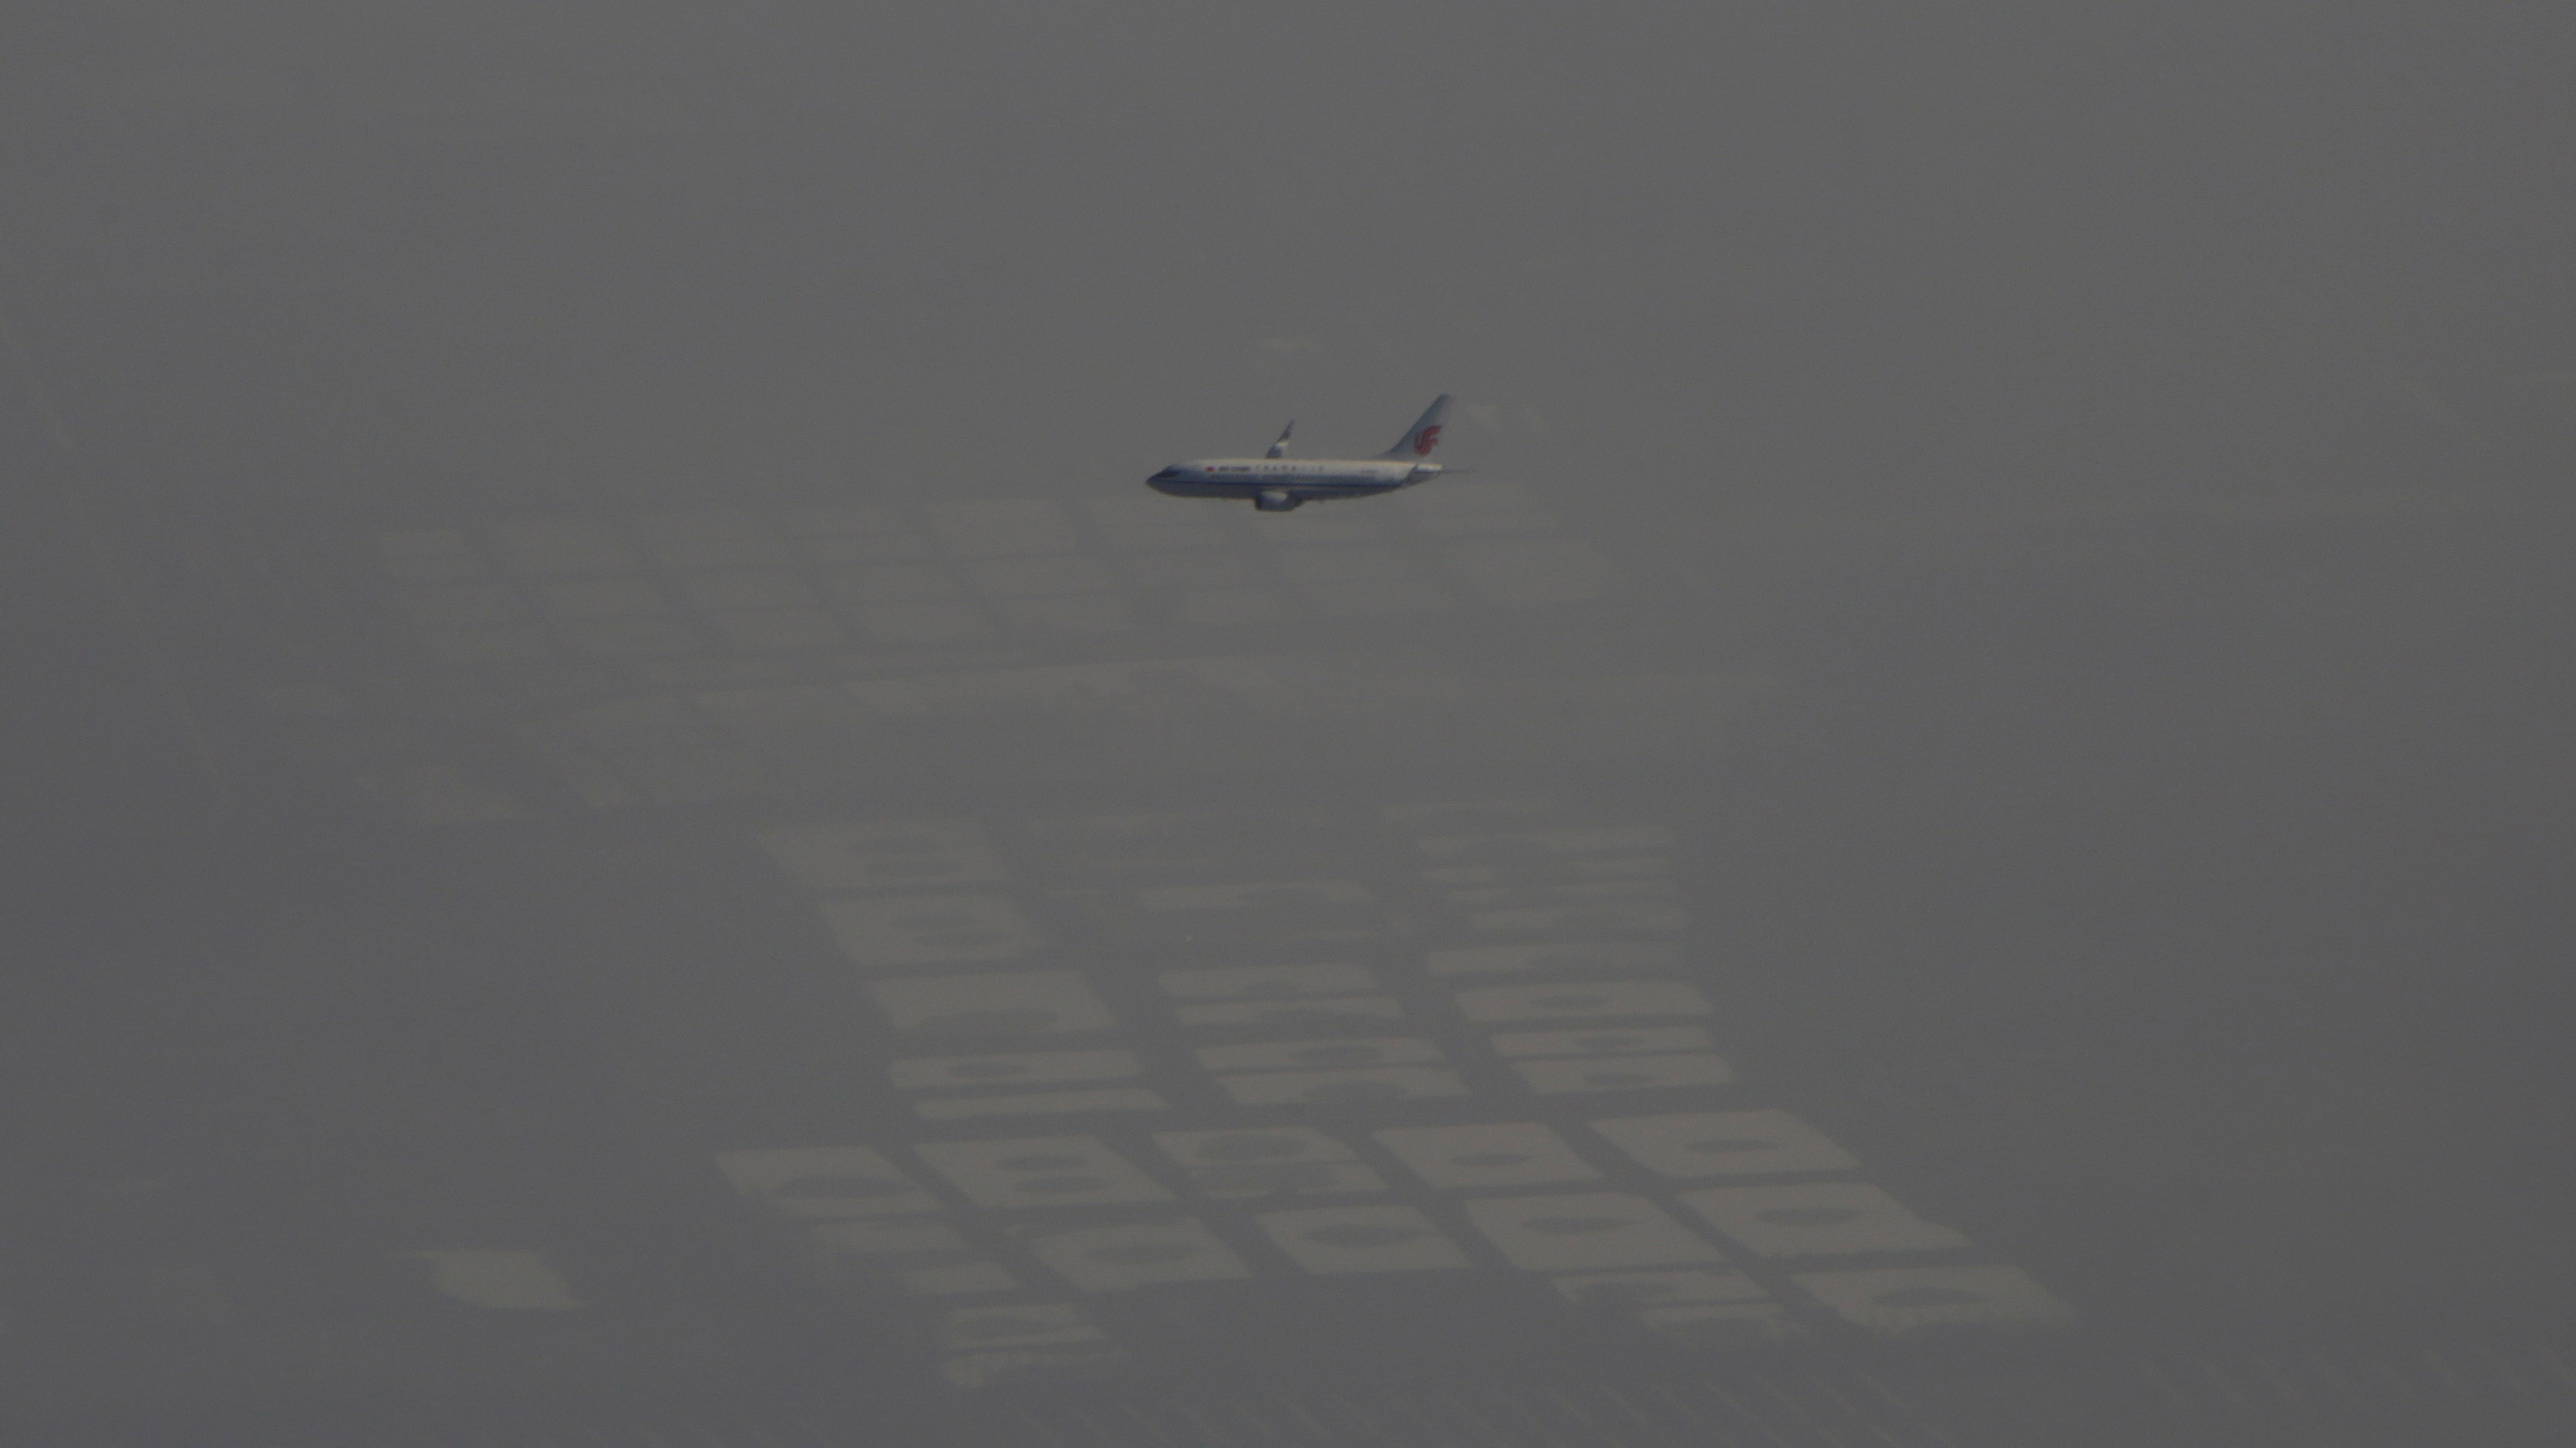 An Air China passenger aircraft flies amid heavy smog over the suburb of Beijing, China, January 2, 2017. REUTERS/Jason Lee - RC1852608AD0